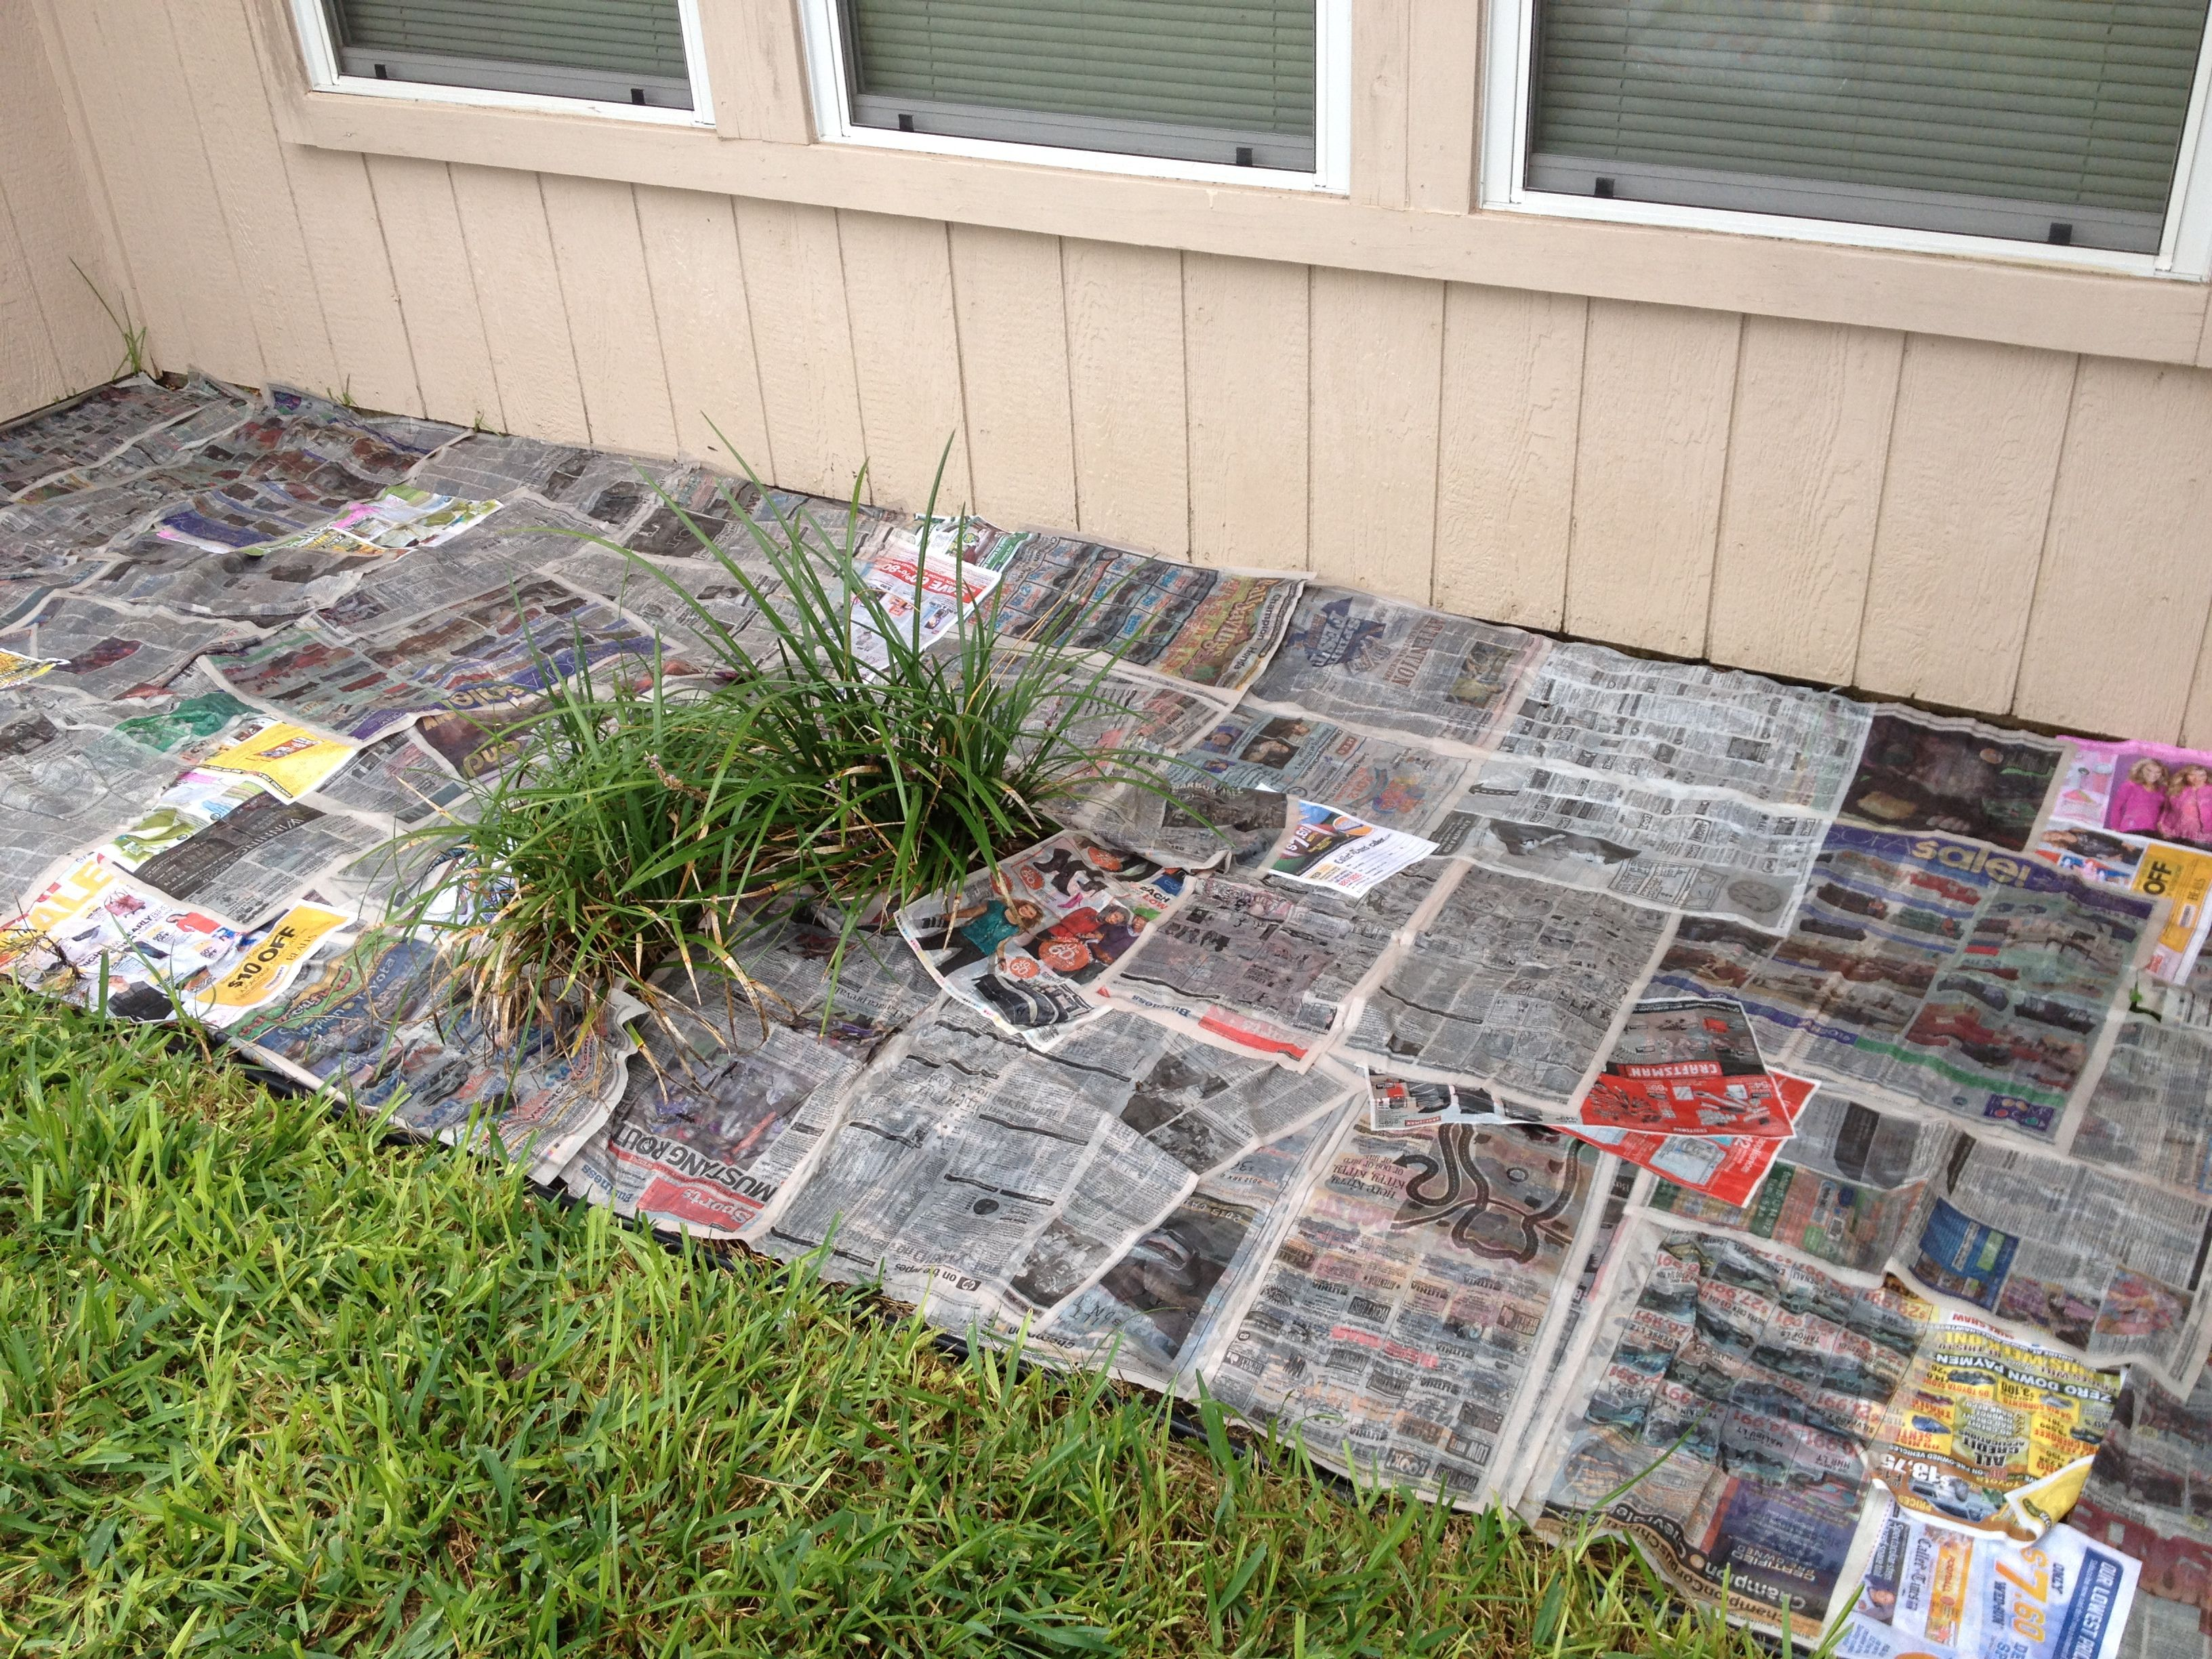 Cheapest and most effective way to keep weeds out of the